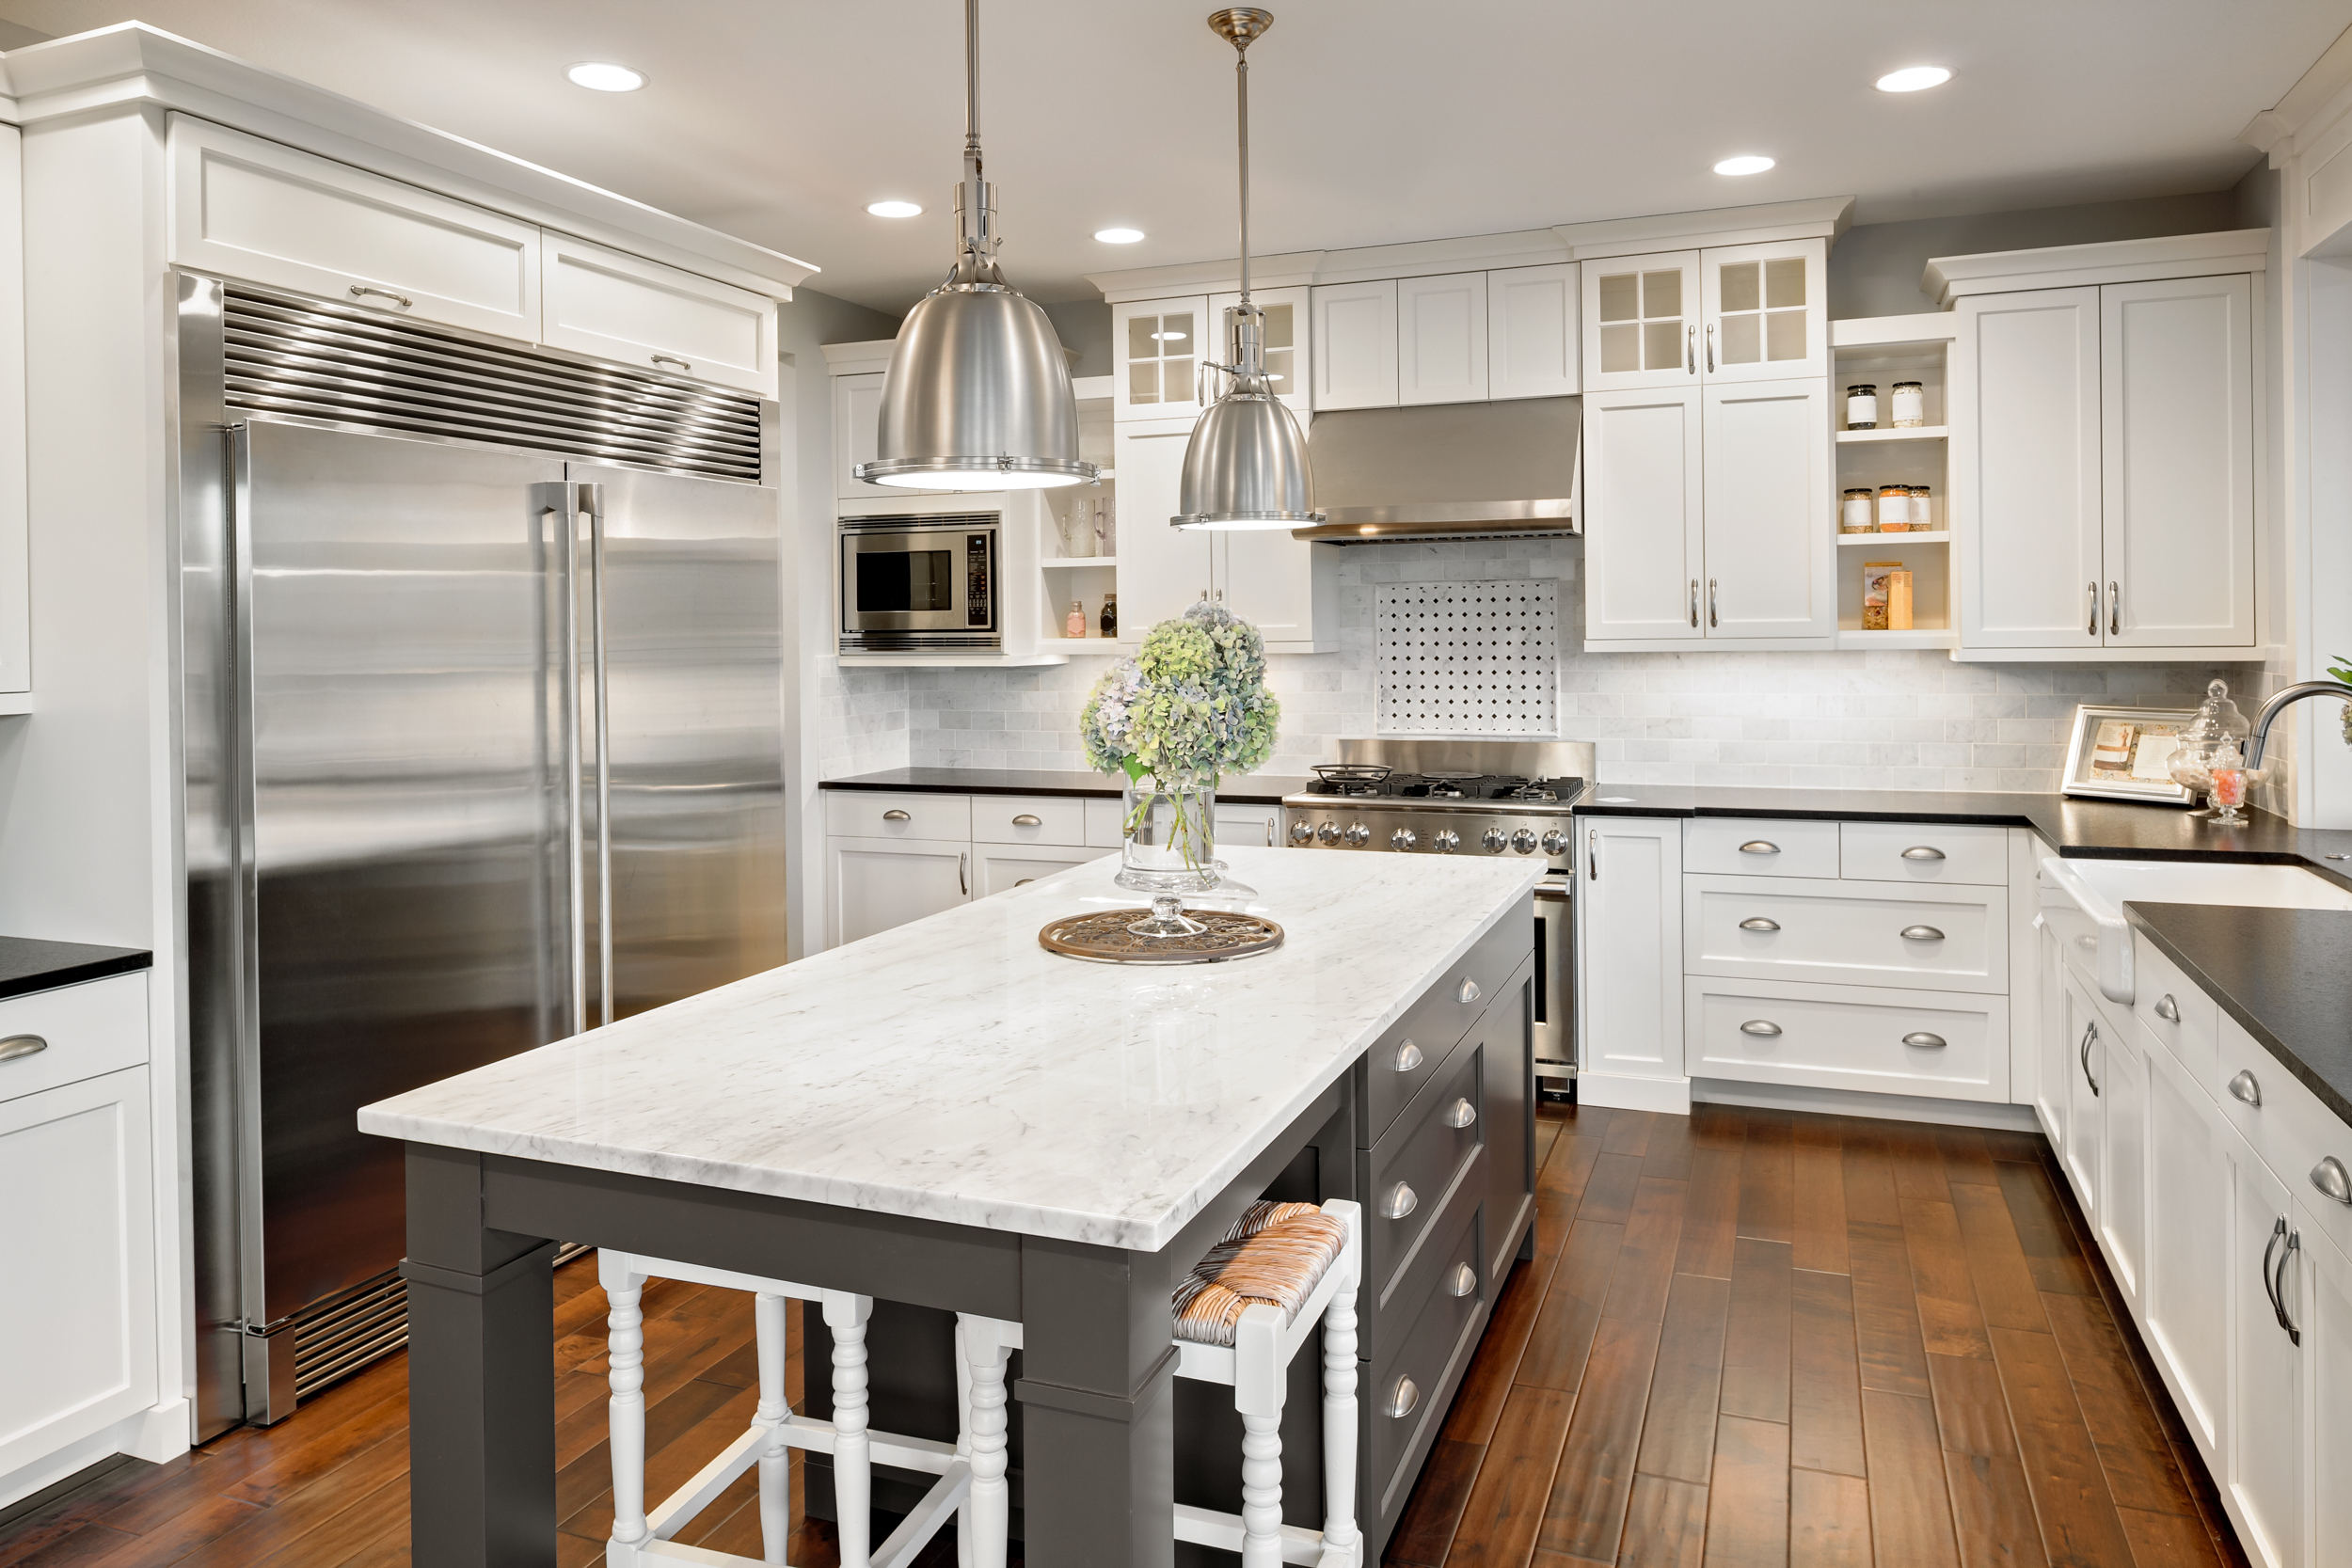 Kitchens are typically the first to be renovated and most frequently remodeled room in a house.